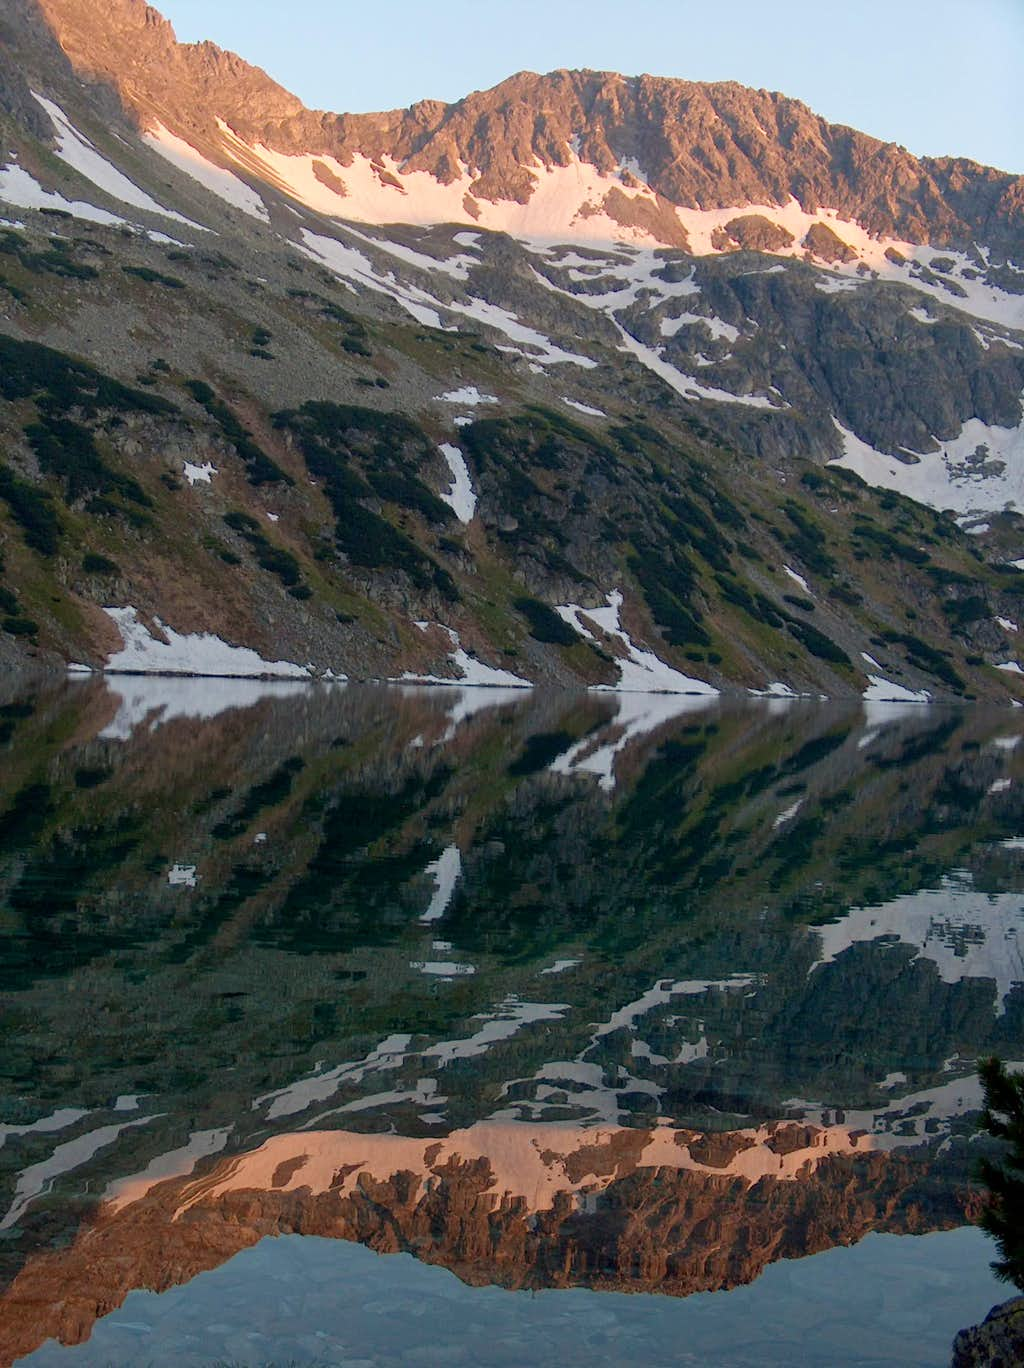 Evening reflections in Wielki Staw in the valley of the Five Lakes